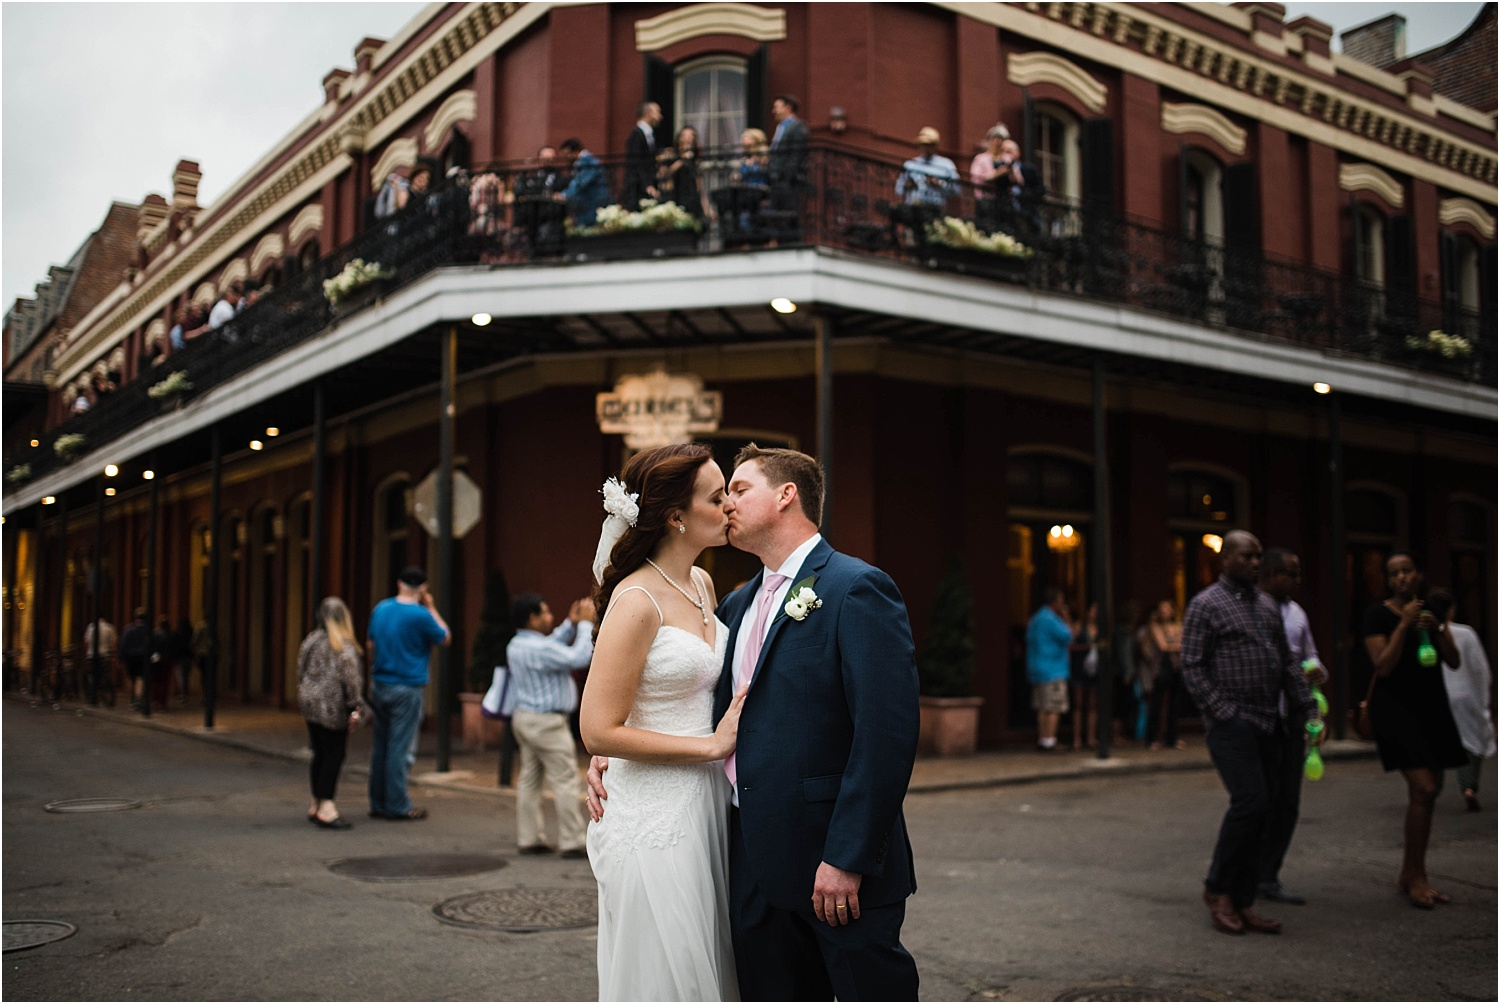 Amy + Chris-Pharmacy-Museum-Muriel's-New-Orleans-Wedding-Photos_Gabby Chapin_Prints_00448_BLOG.jpg